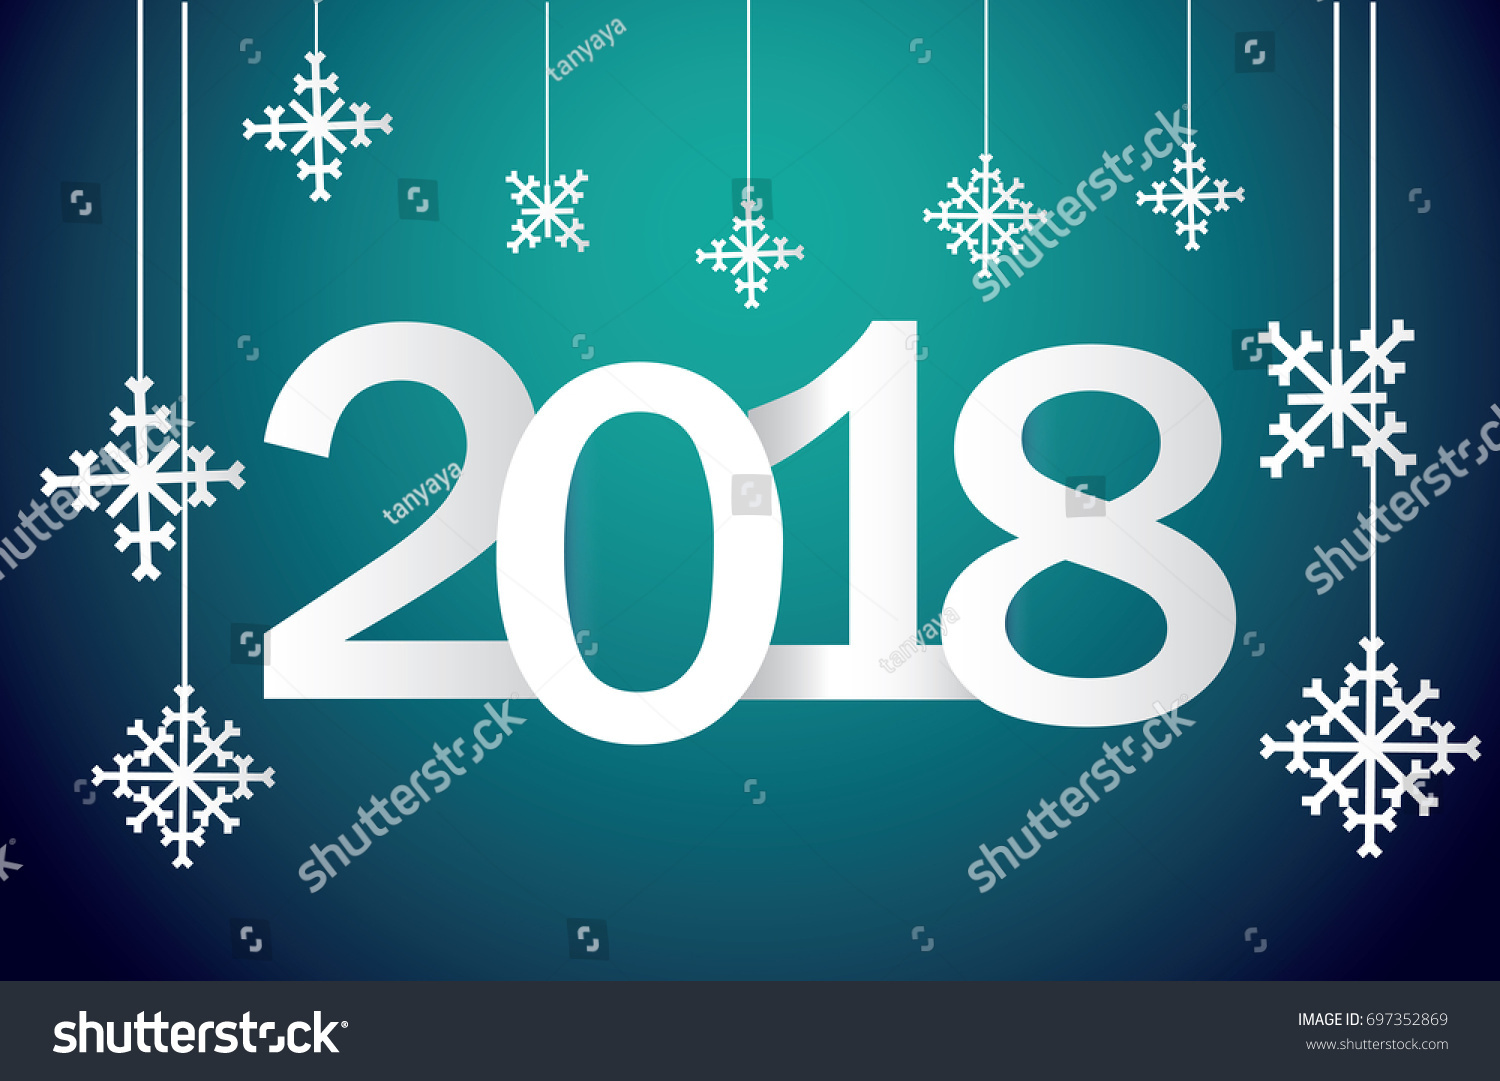 Festive New Years Greetings 2018 Snowflakes Stock Vector Royalty